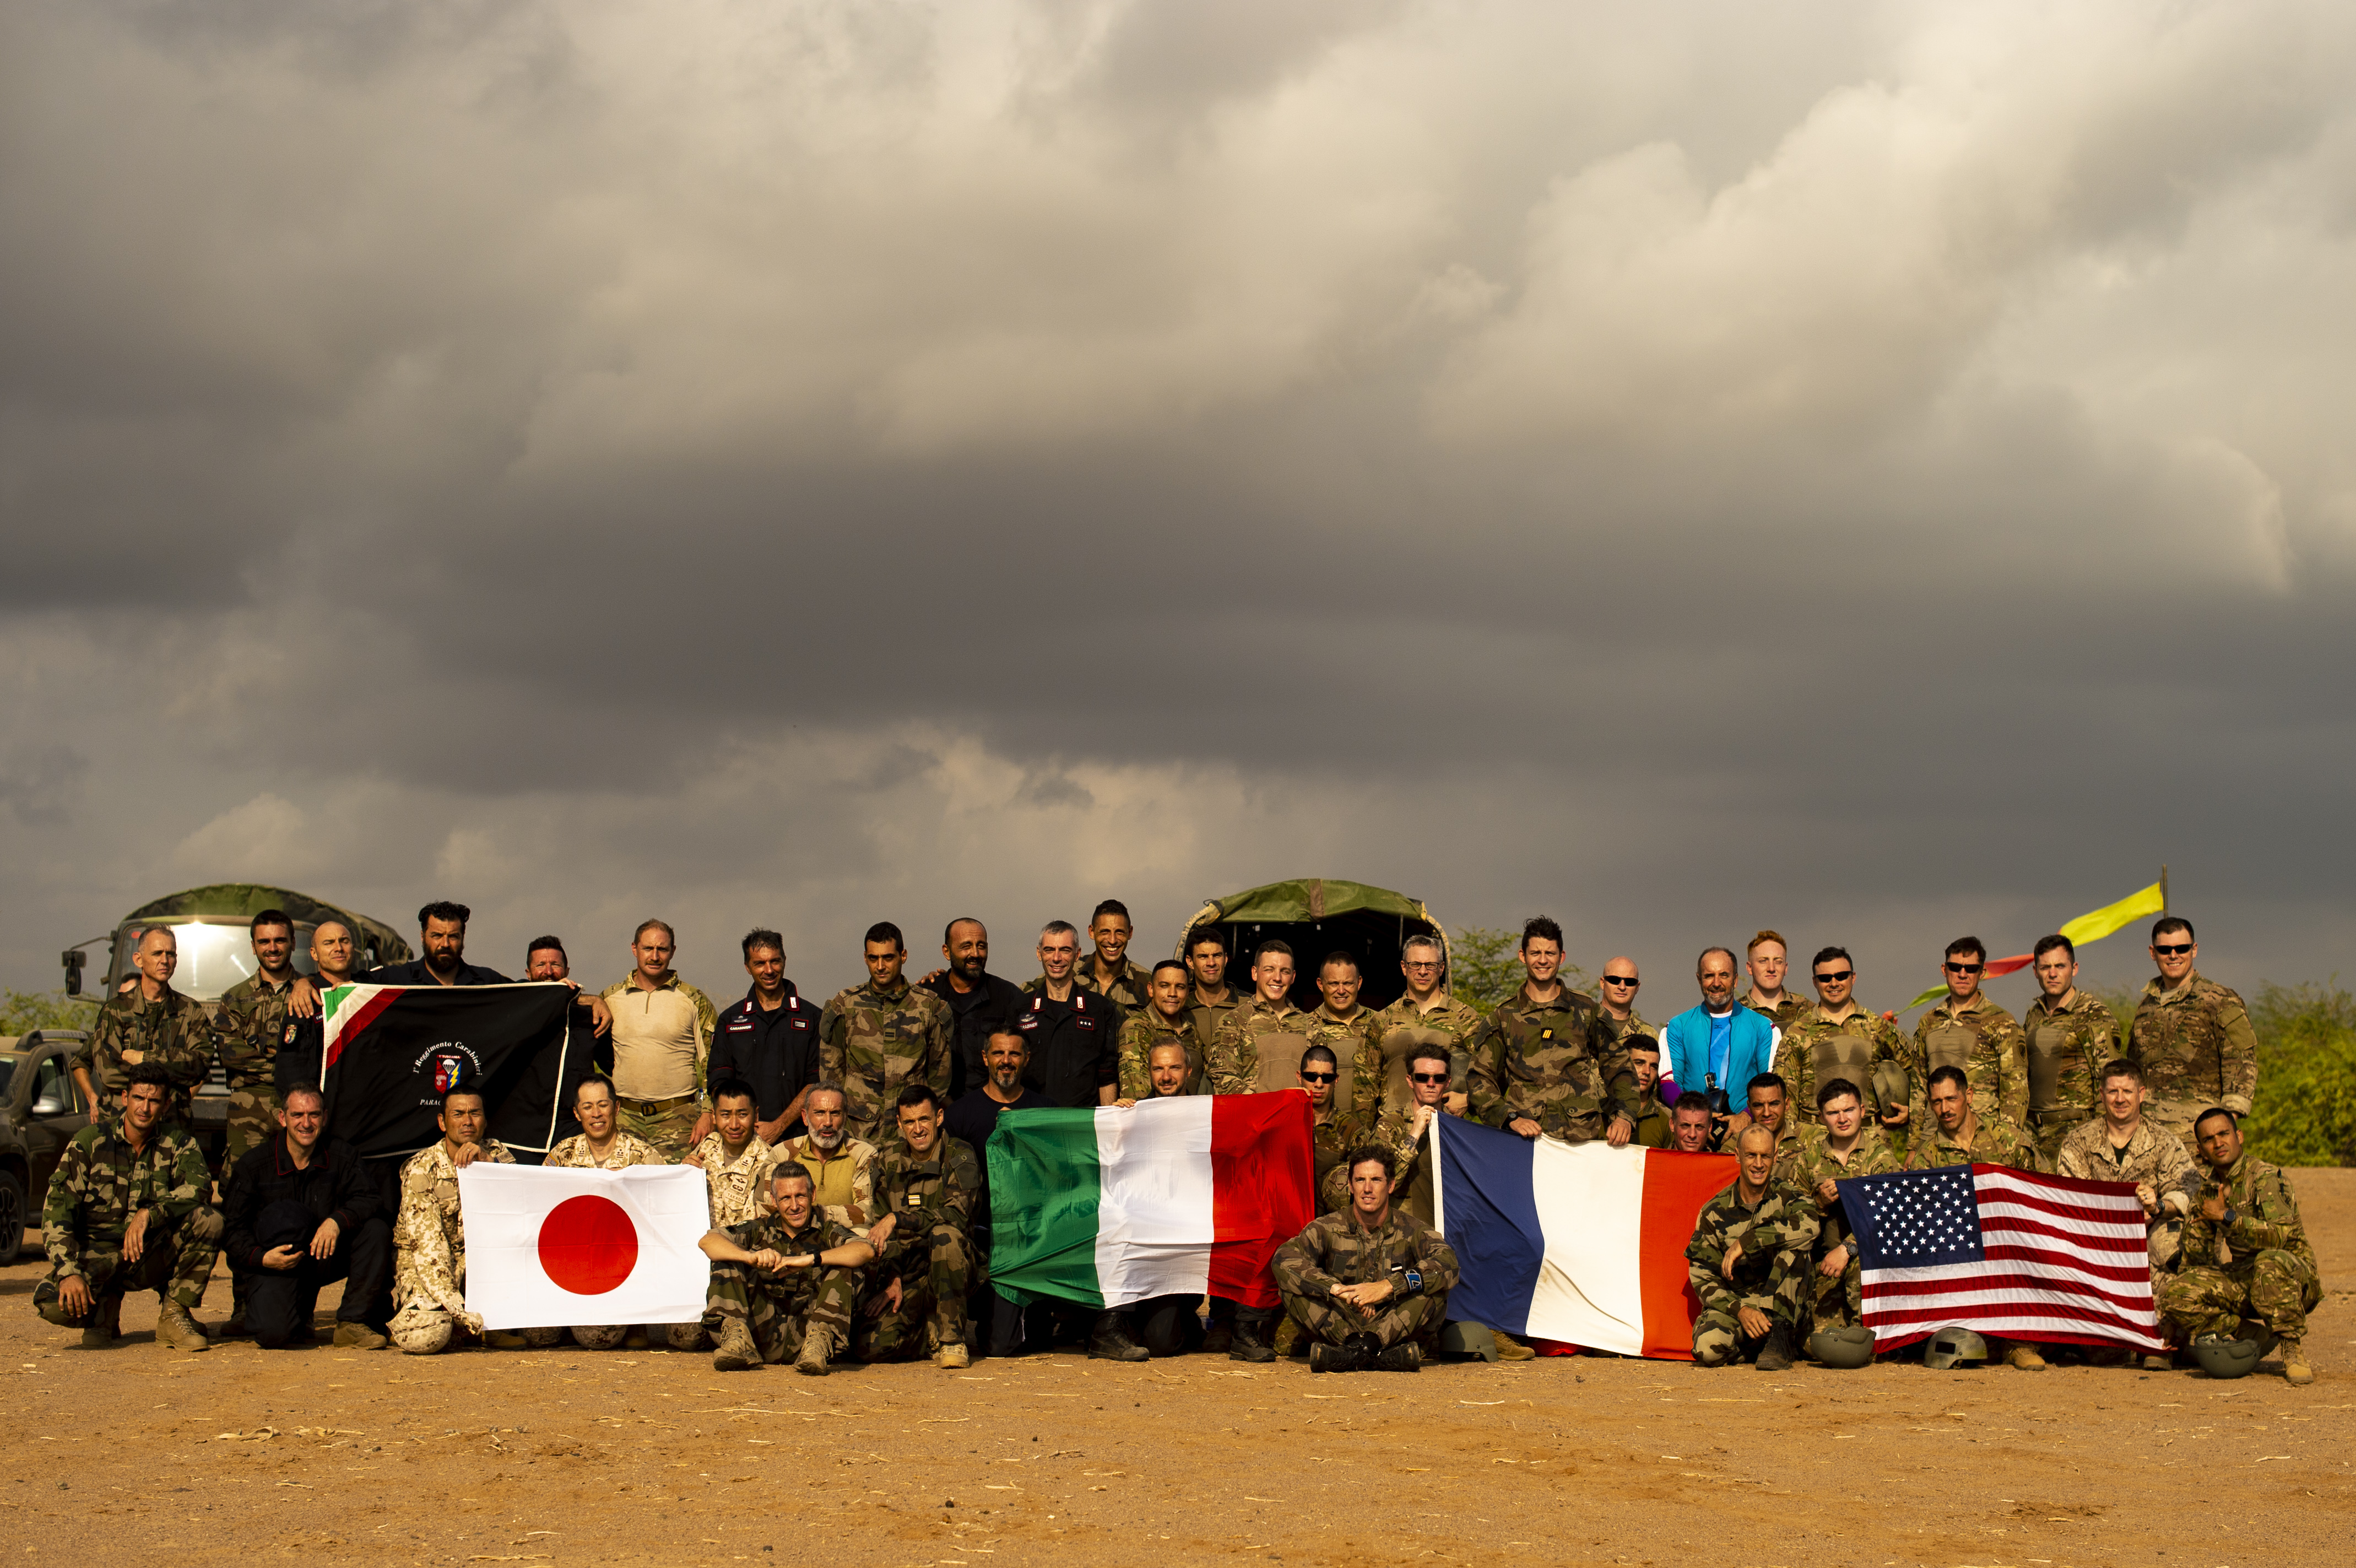 Military service members from Japan, Italy, France, and the U.S. pose for a group photograph outside Djibouti City, Djibouti, Oct. 1, 2018. American service members and coalition partners jumped together to celebrate the Feast Day of Archangel Michael, the patron saint of paratroopers. (U.S. Air Force photo by Senior Airman Scott Jackson)